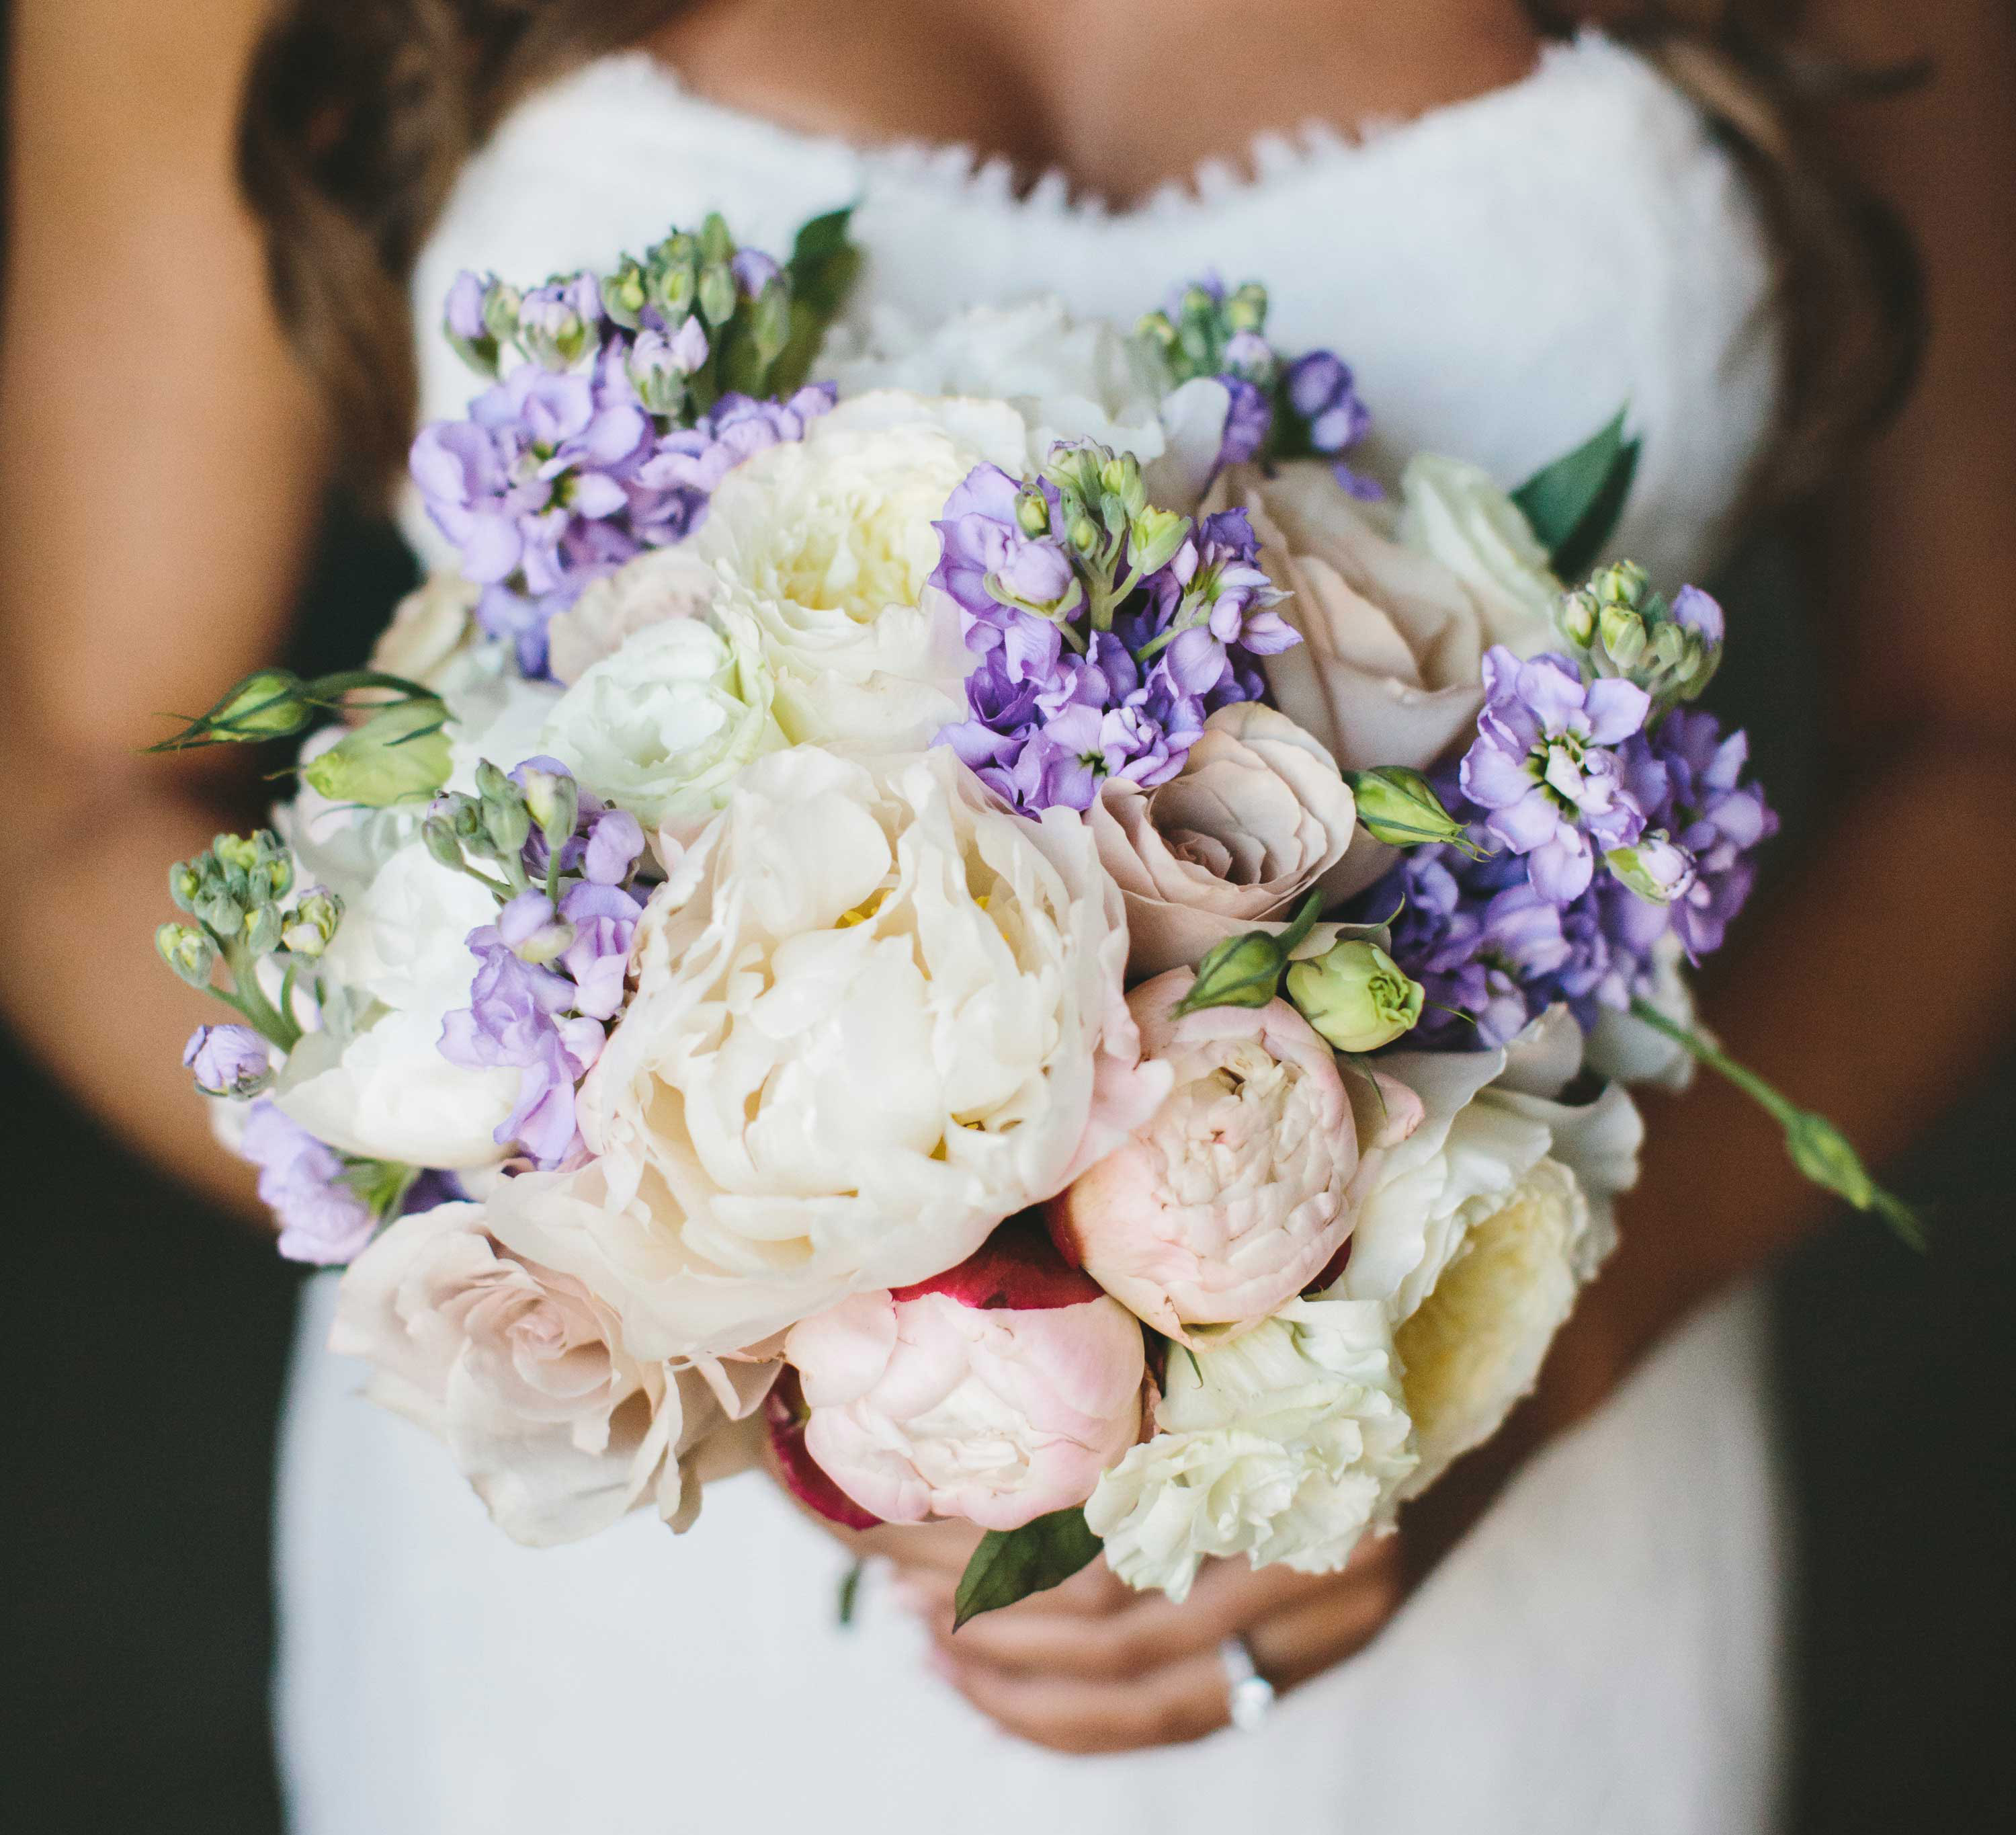 bridal bouquet with lilac flowers, blush peonies, mauve roses